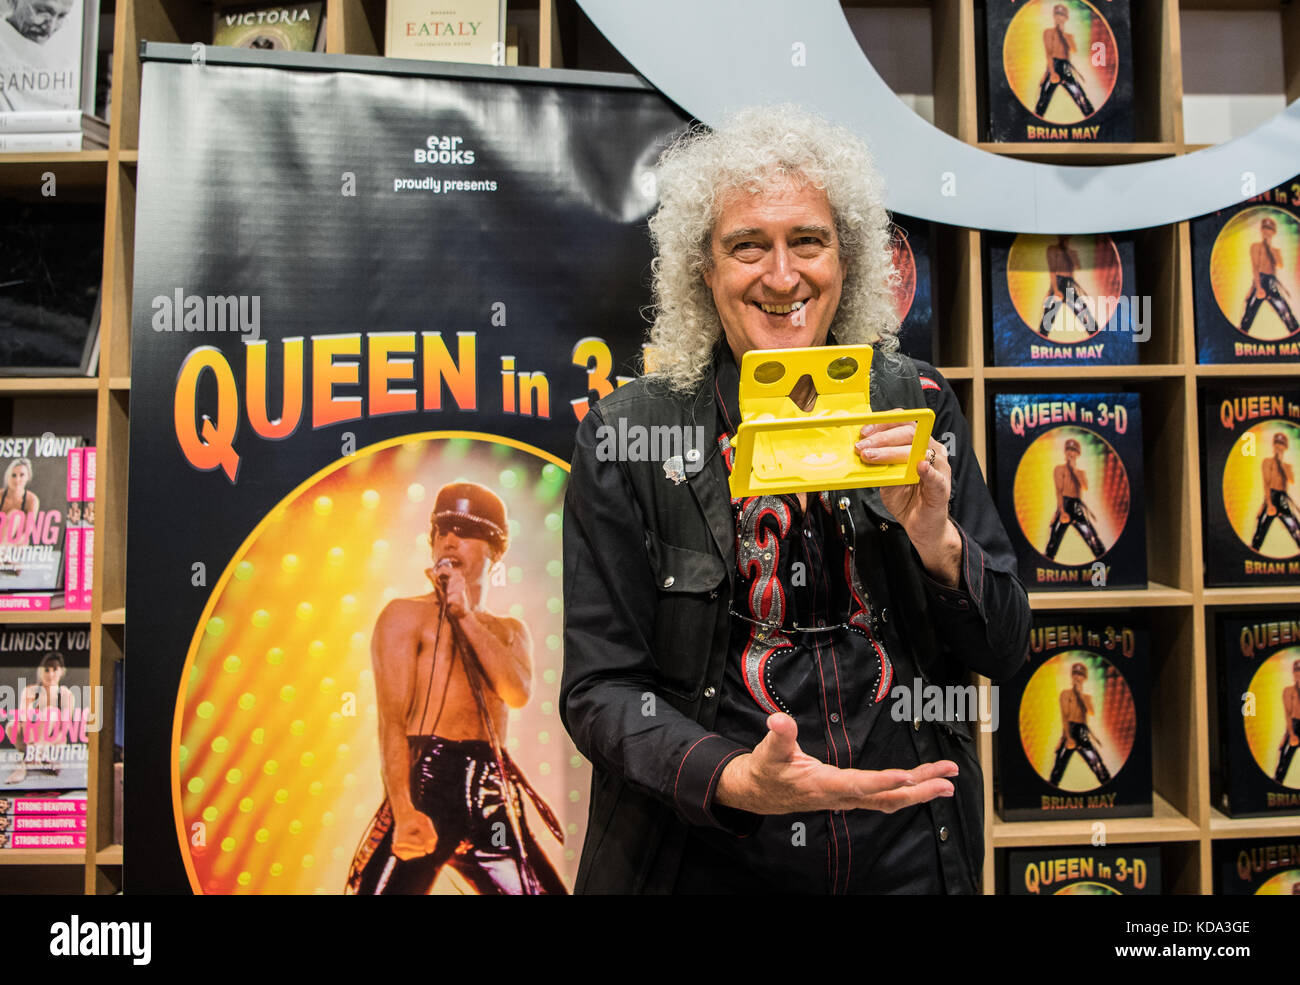 Frankfurt am Main, Germany. 12th Oct, 2017. Guitarrist Brian May of Queen presenting his new book 'Queen in - Stock Image